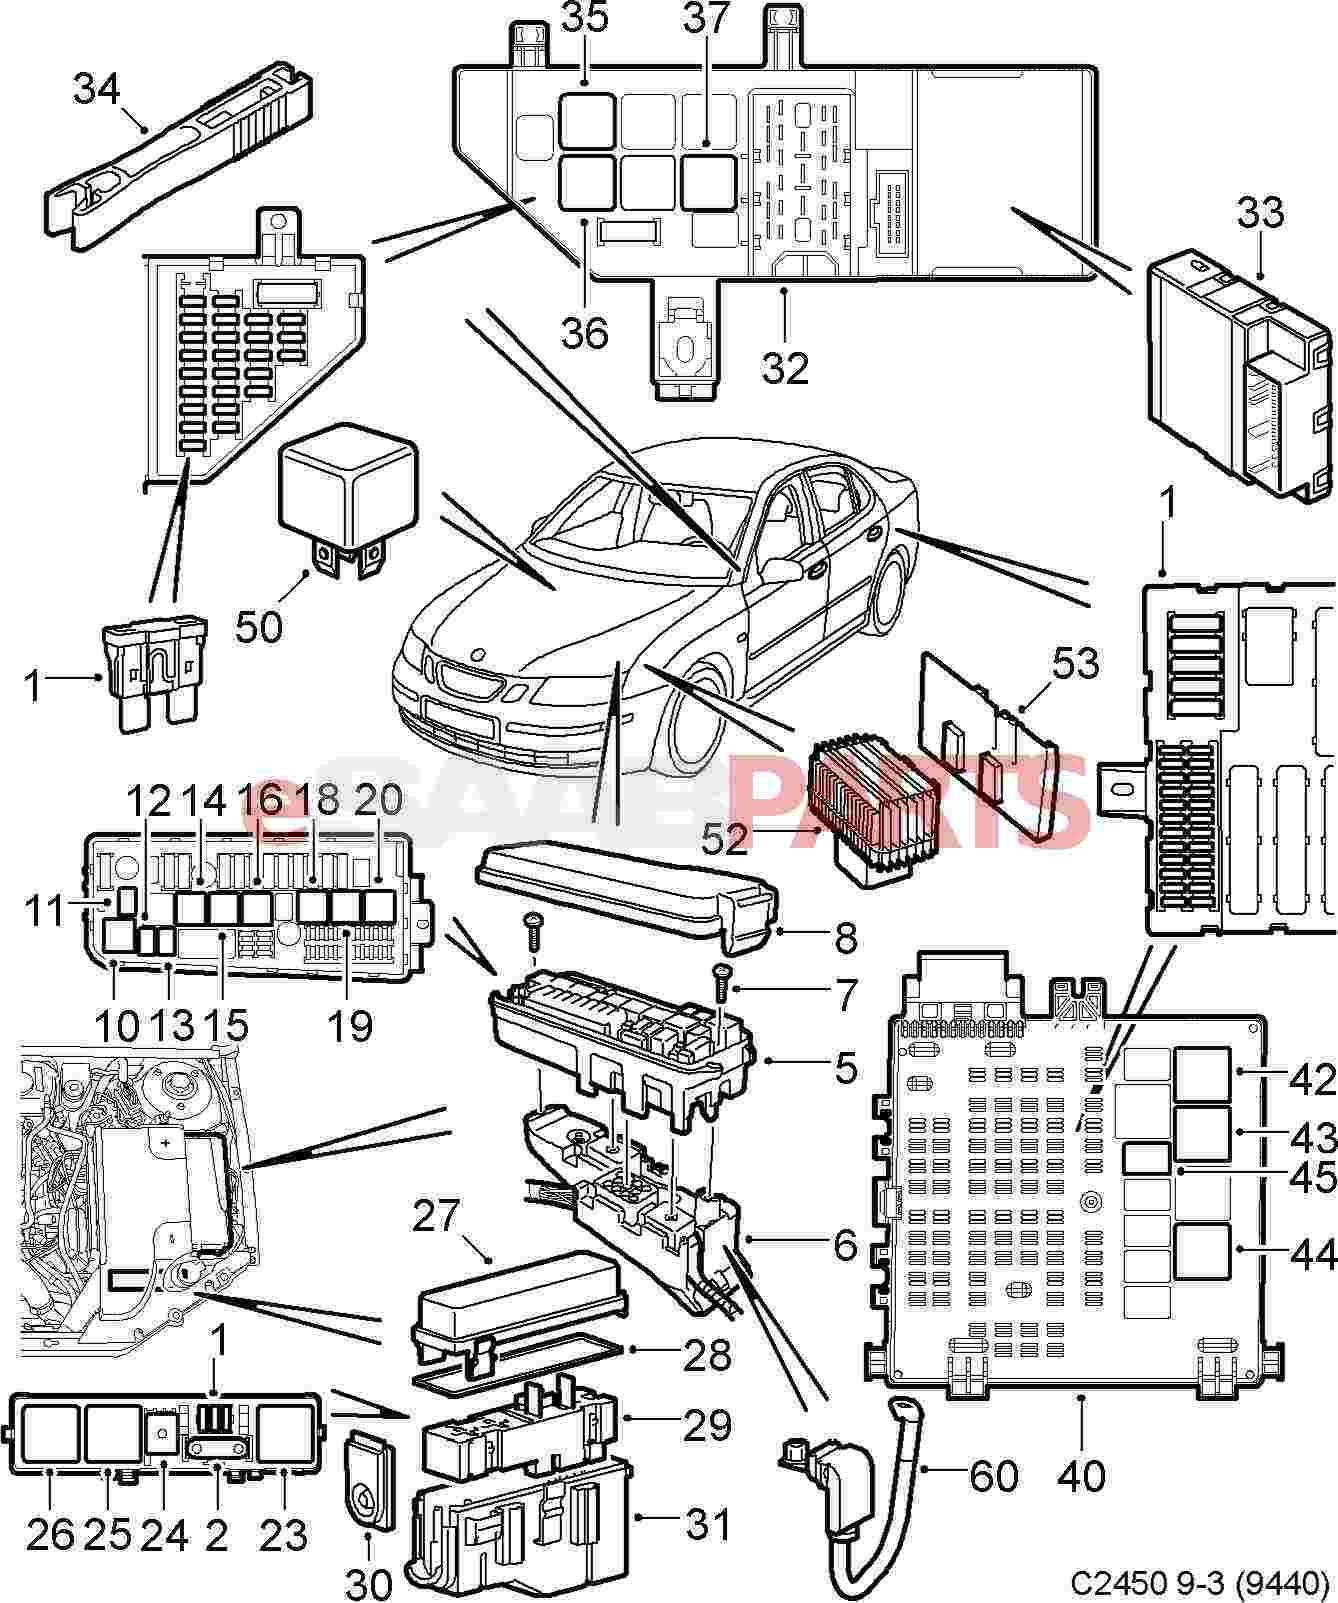 Jeep Wrangler Heater Blower Wiring Diagram